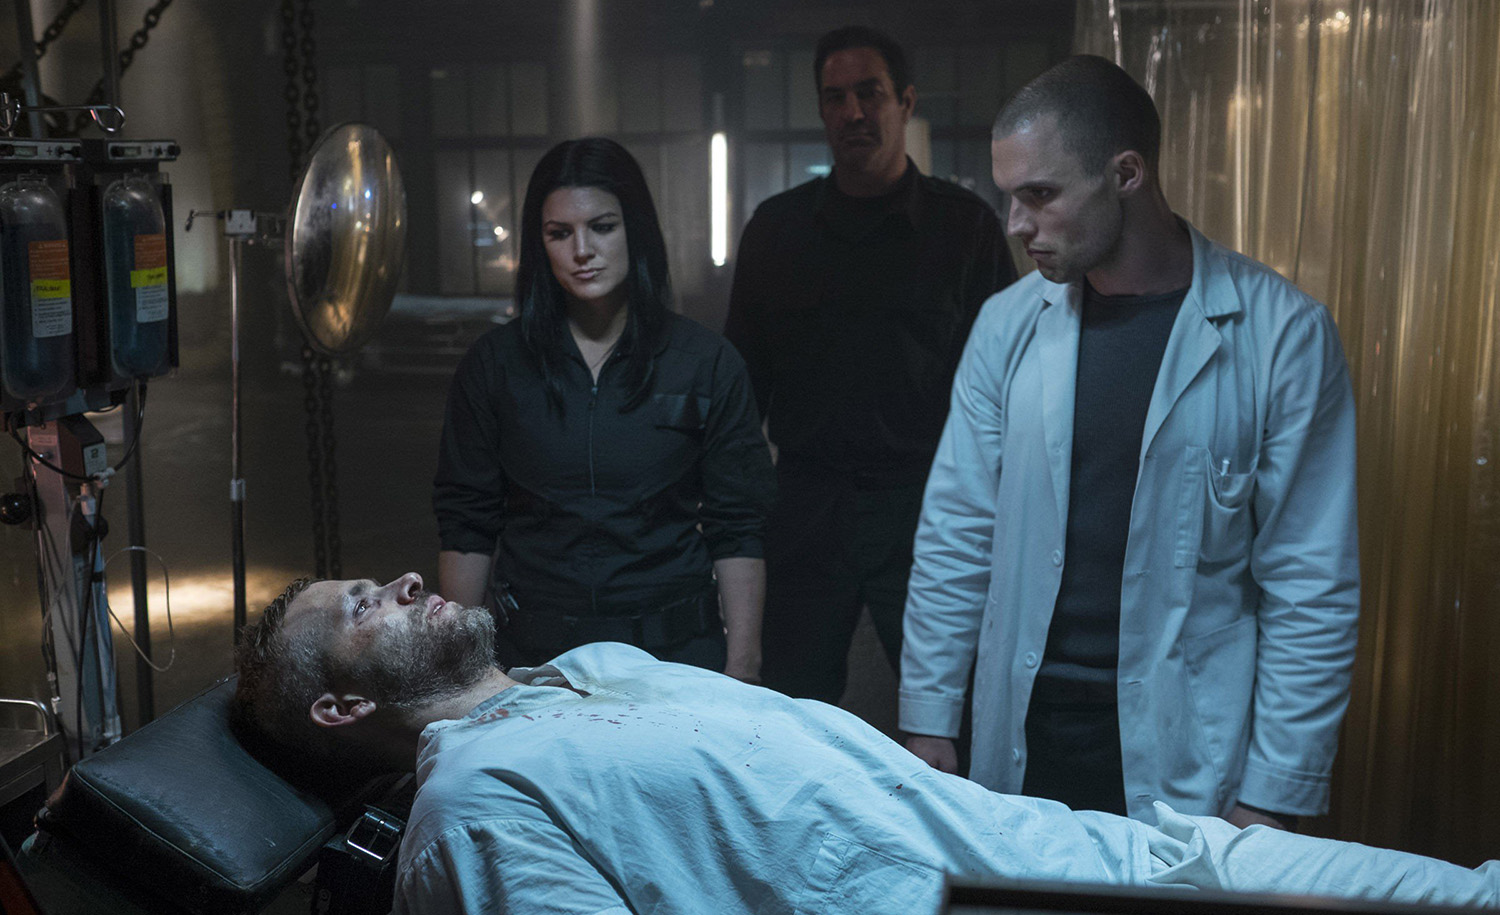 Francis (Ed Skrein) and Angel Dust (Gina Carano) prepare to trigger Wilson's mutation.